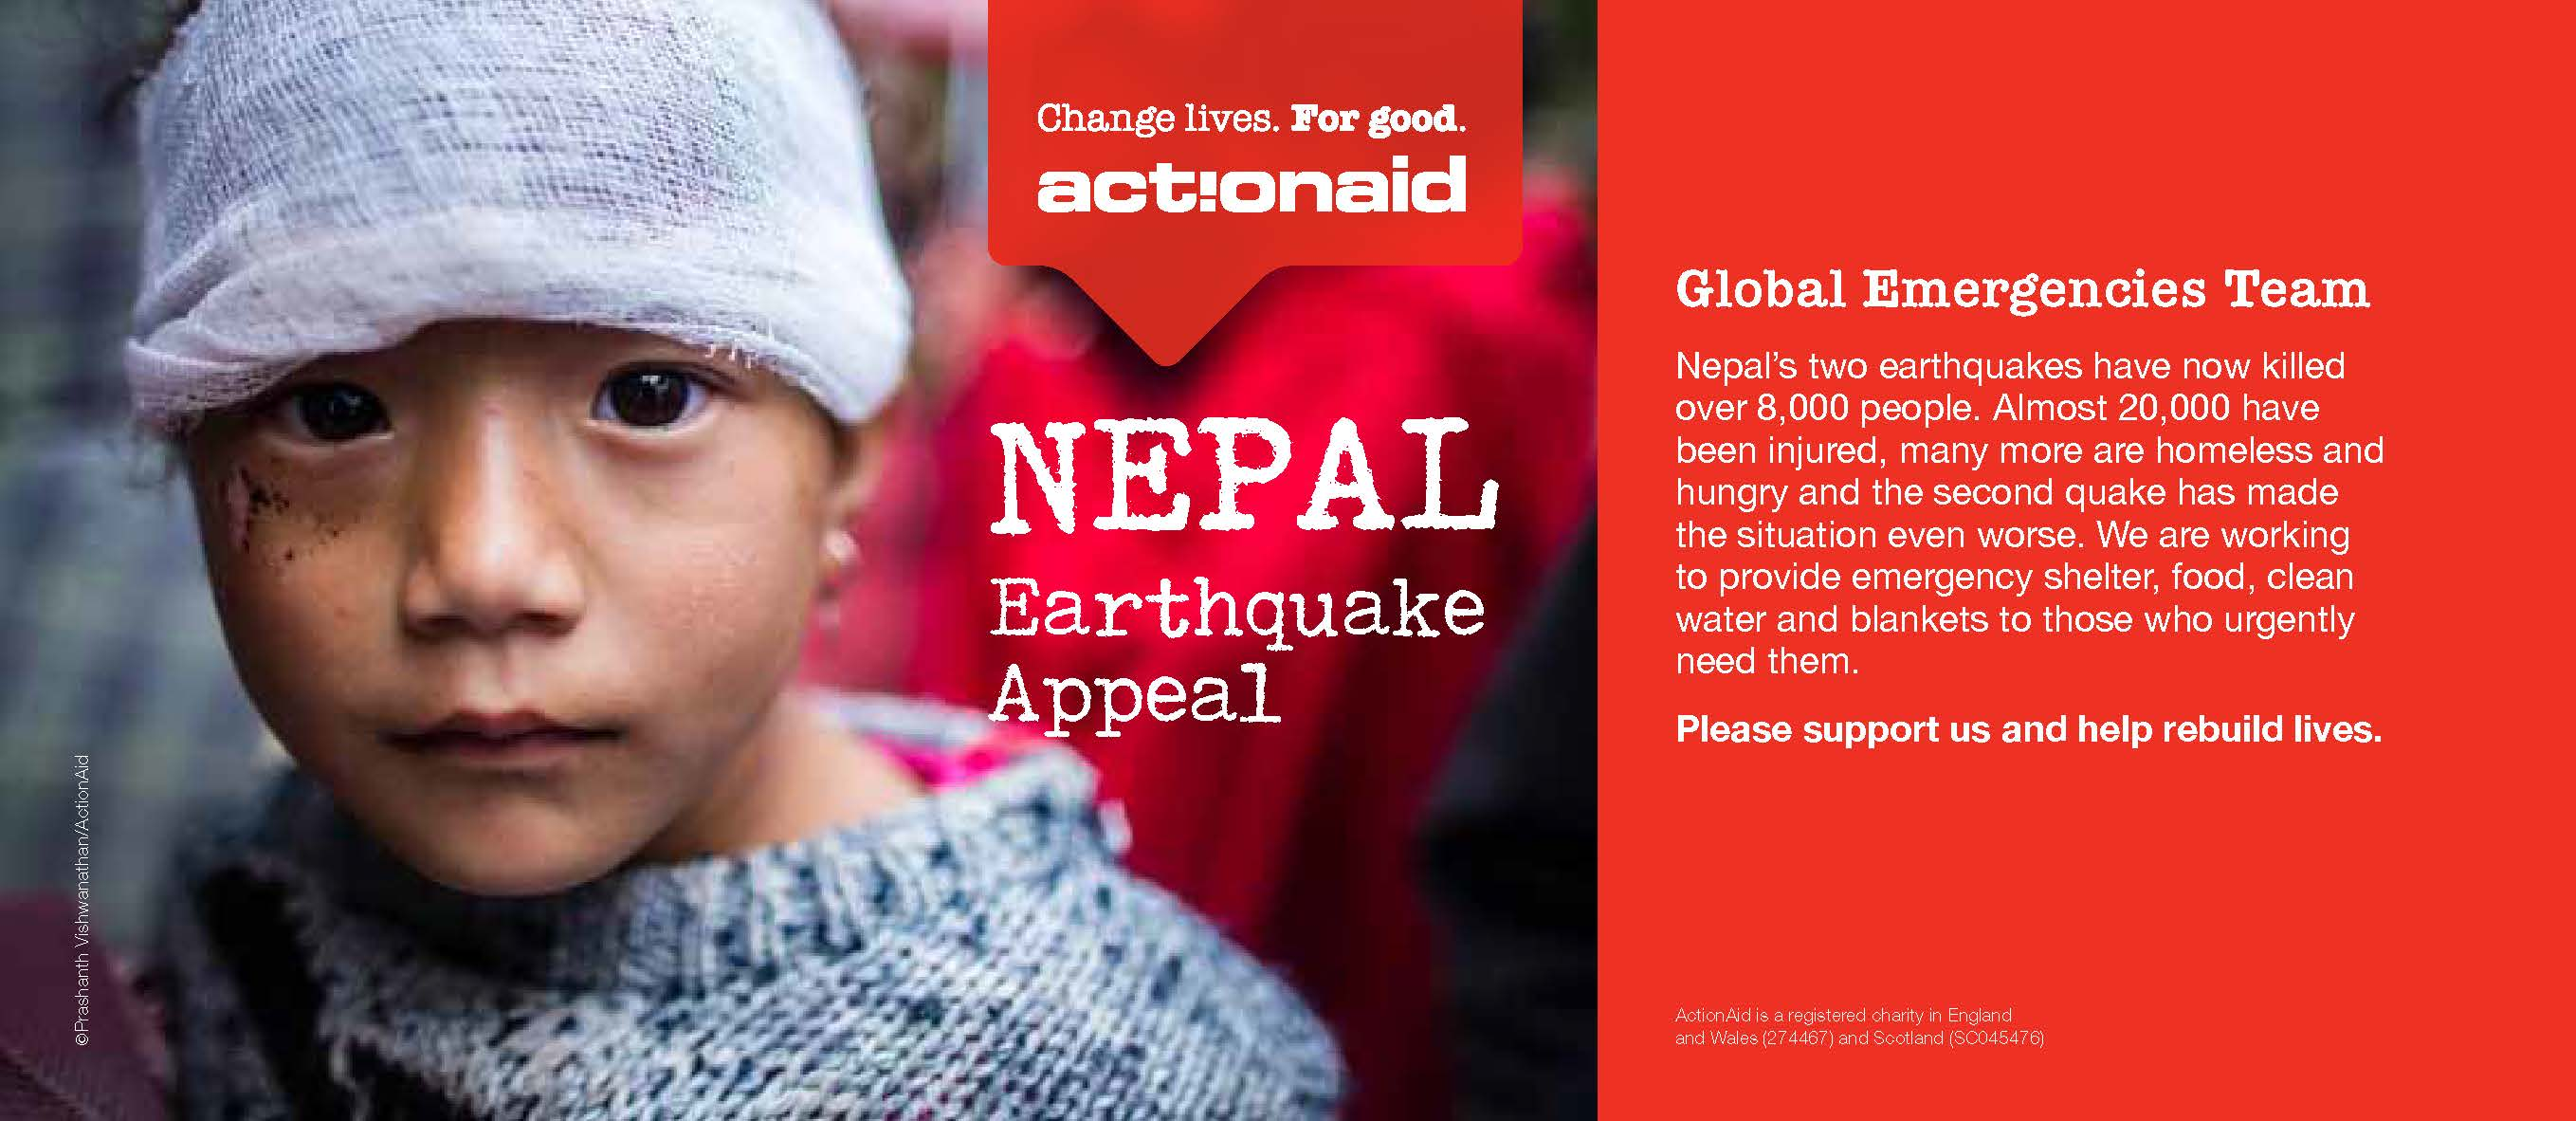 Action Aid UK - Nepal Earthquake Fundraising Appeal